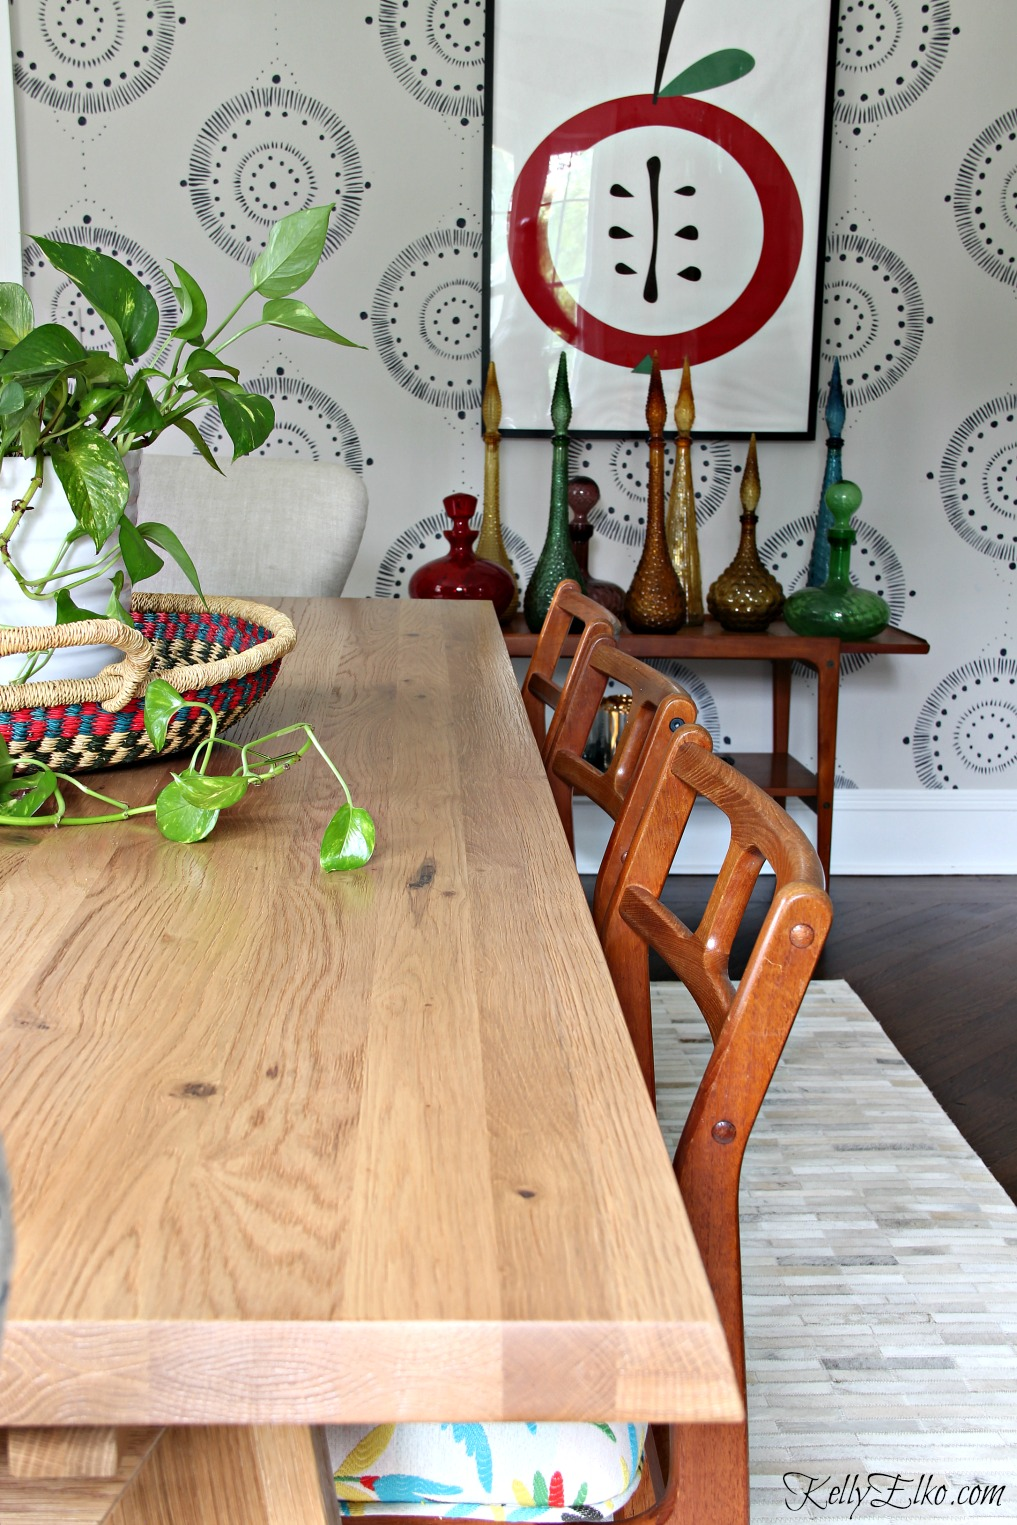 Love this eclectic dining room with extendable table, Danish modern chairs and wall mural kellyelko.com #diningroom #diningroomdecor #diningroomfurniture #wallart #murals #eclectic #interiordecor